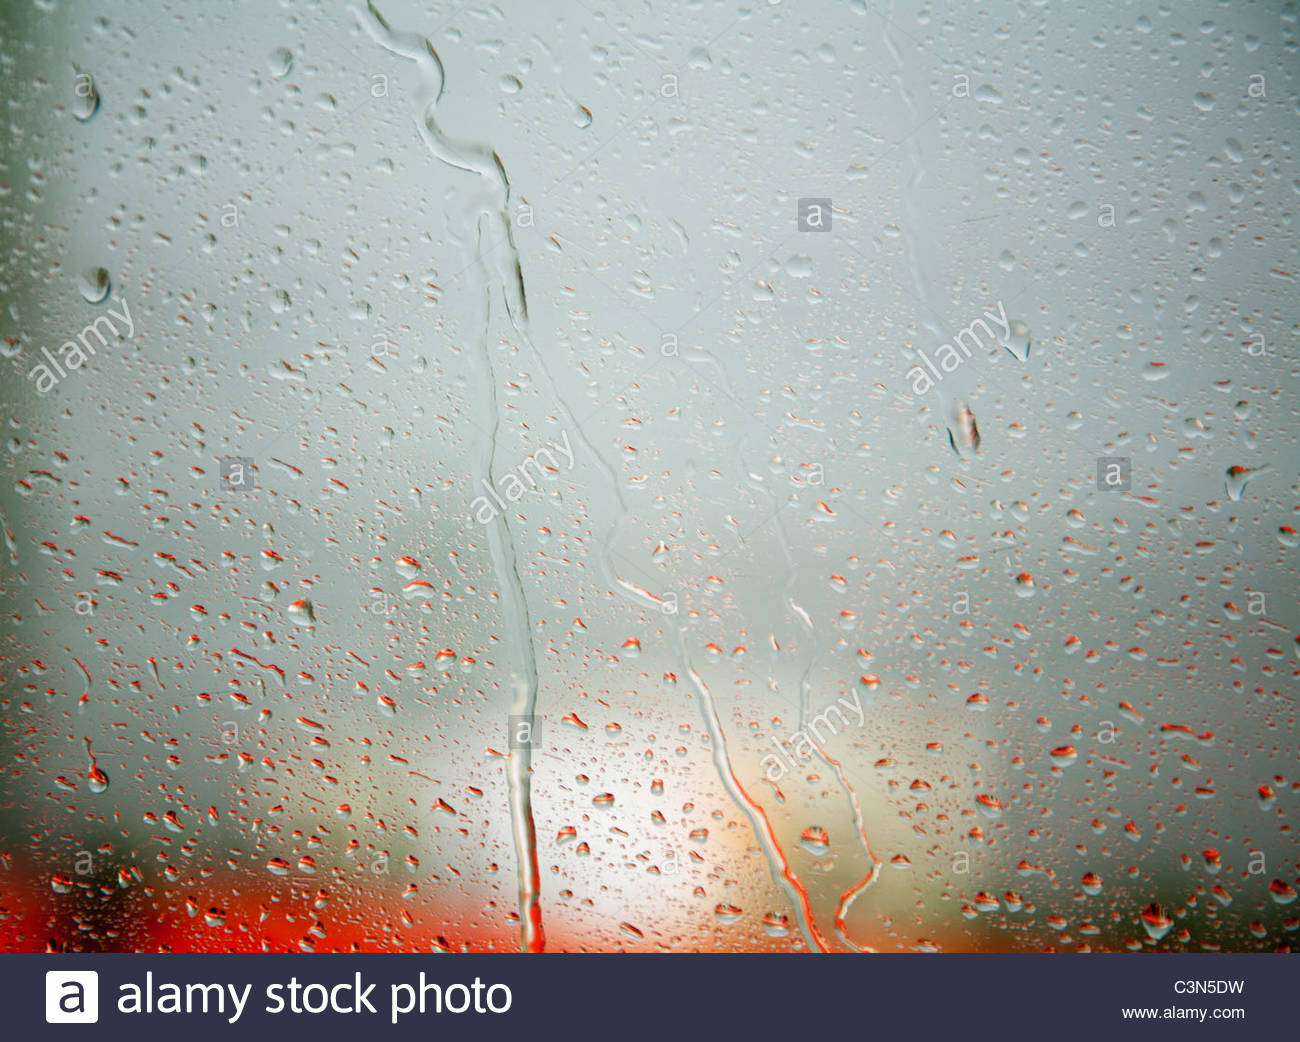 Rain droplets on window, red bus behind - Stock Image